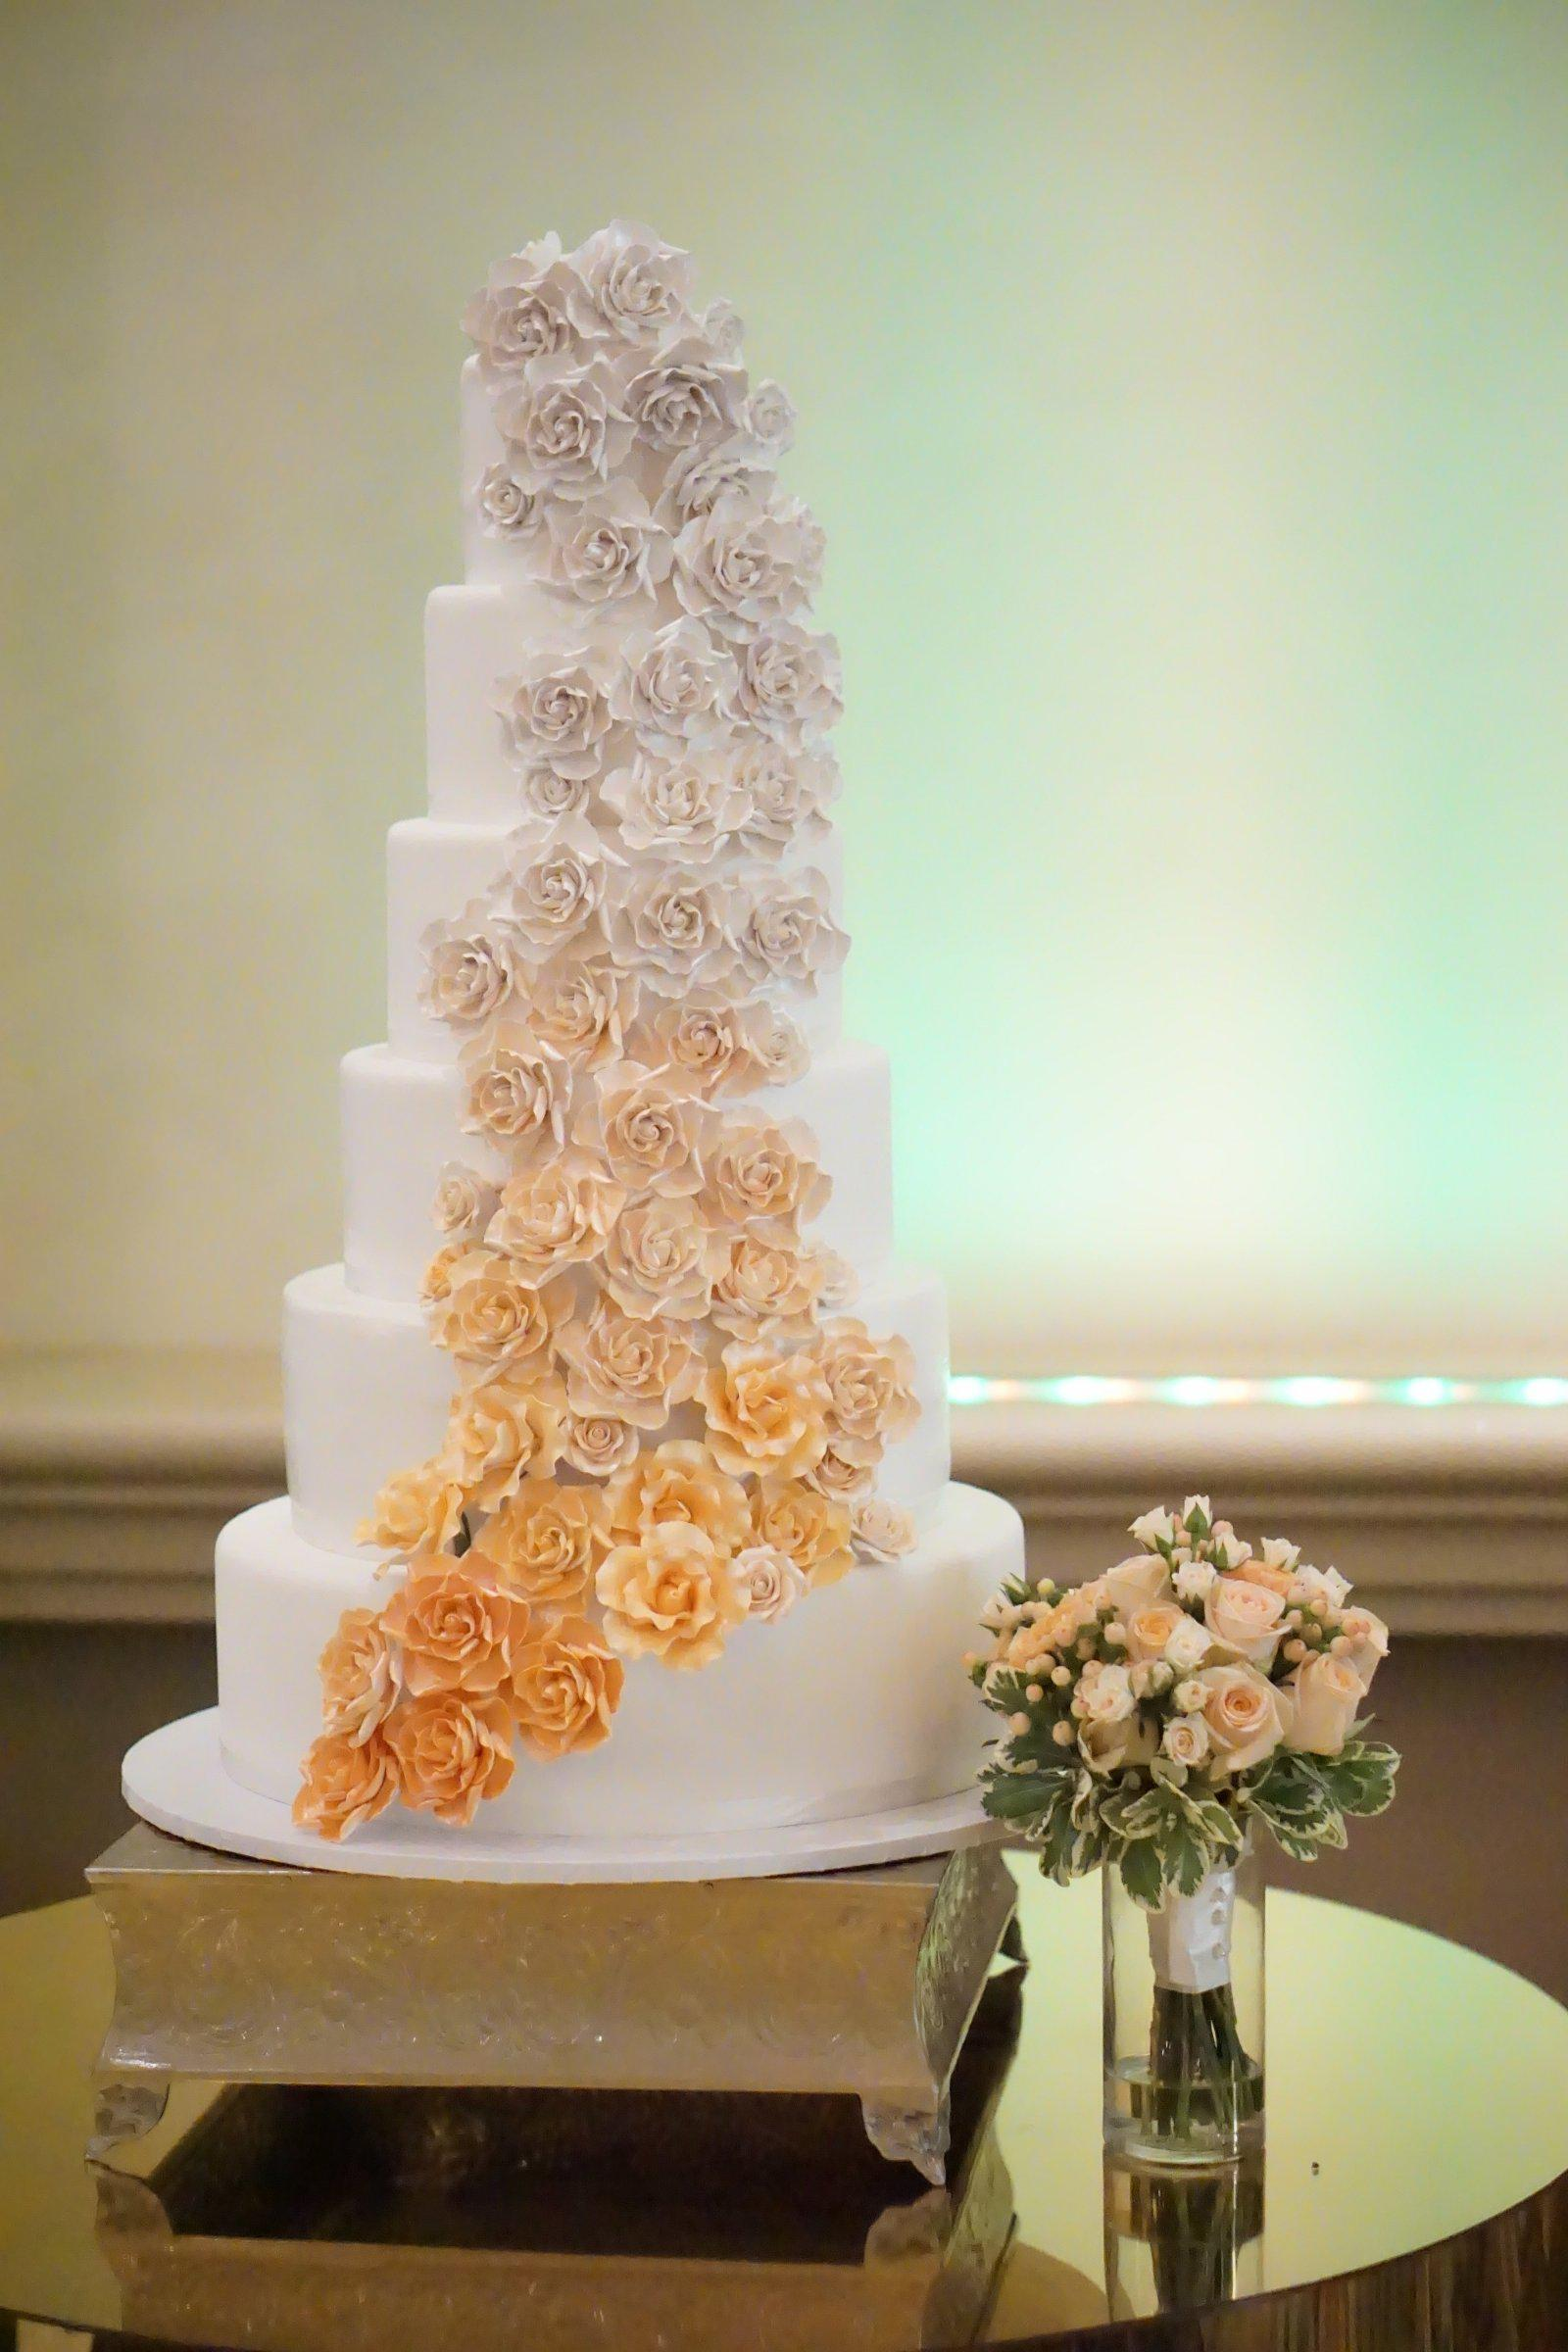 Best Wedding Cakes Los Angeles- The Show Stealers of 10 - IssueWire